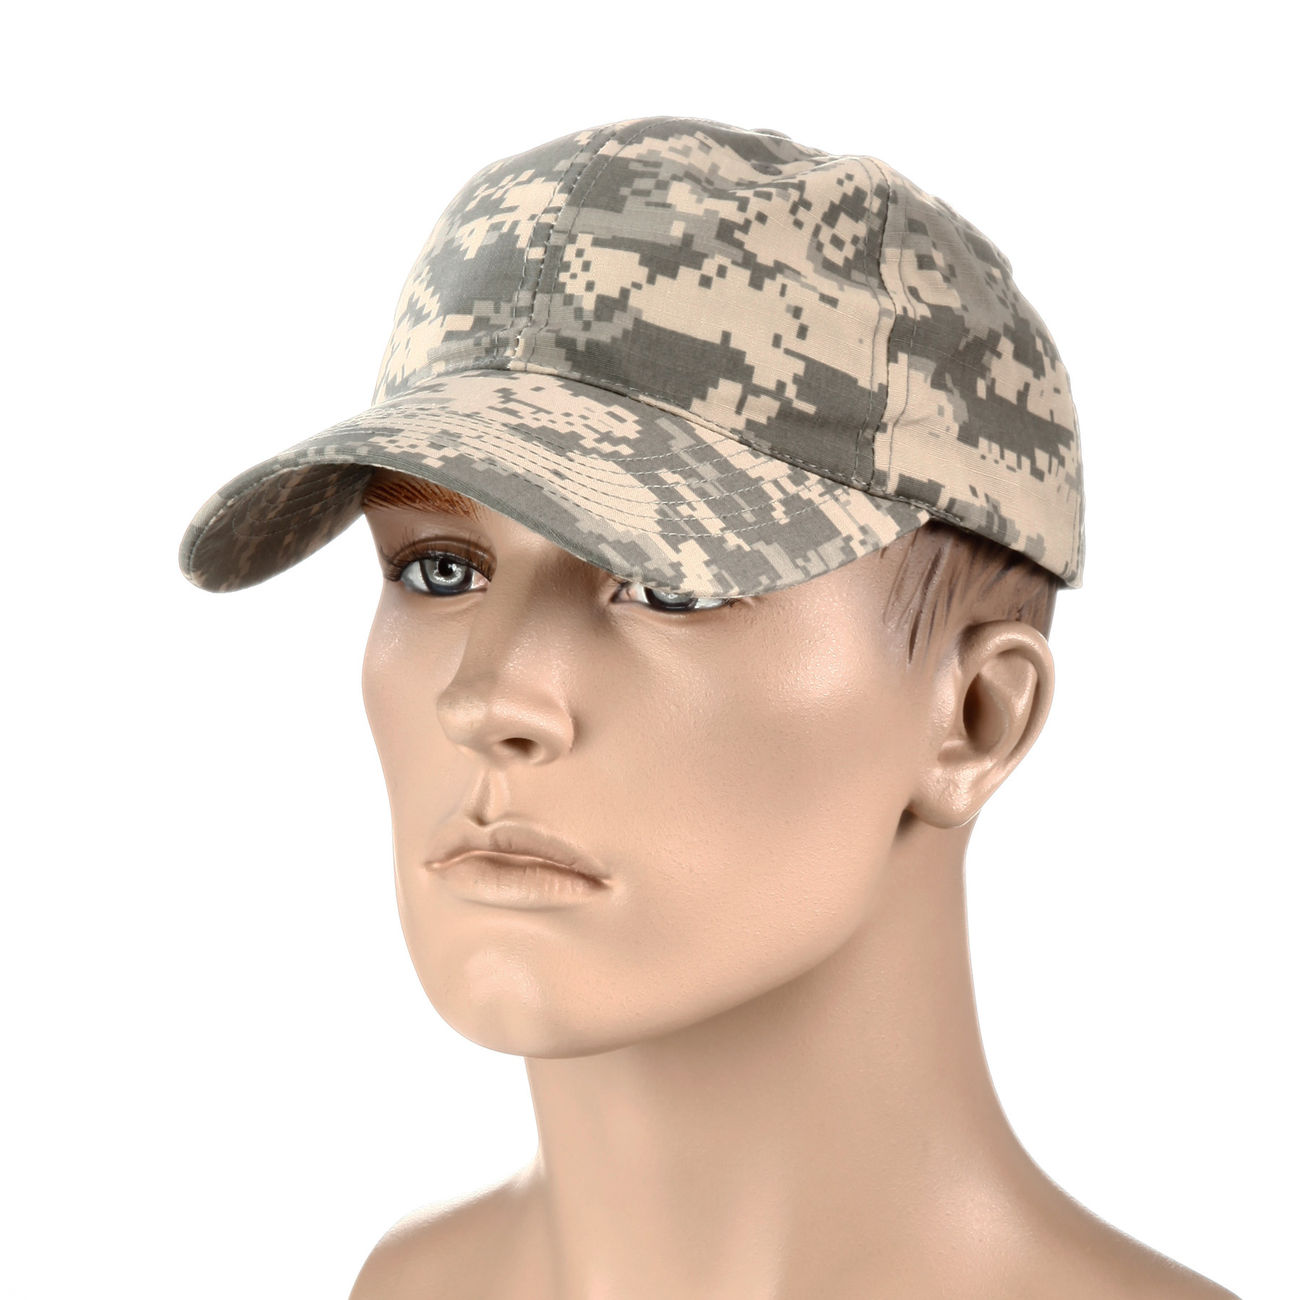 Mil-Tec Baseball Cap Ripstop AT-Digital 0